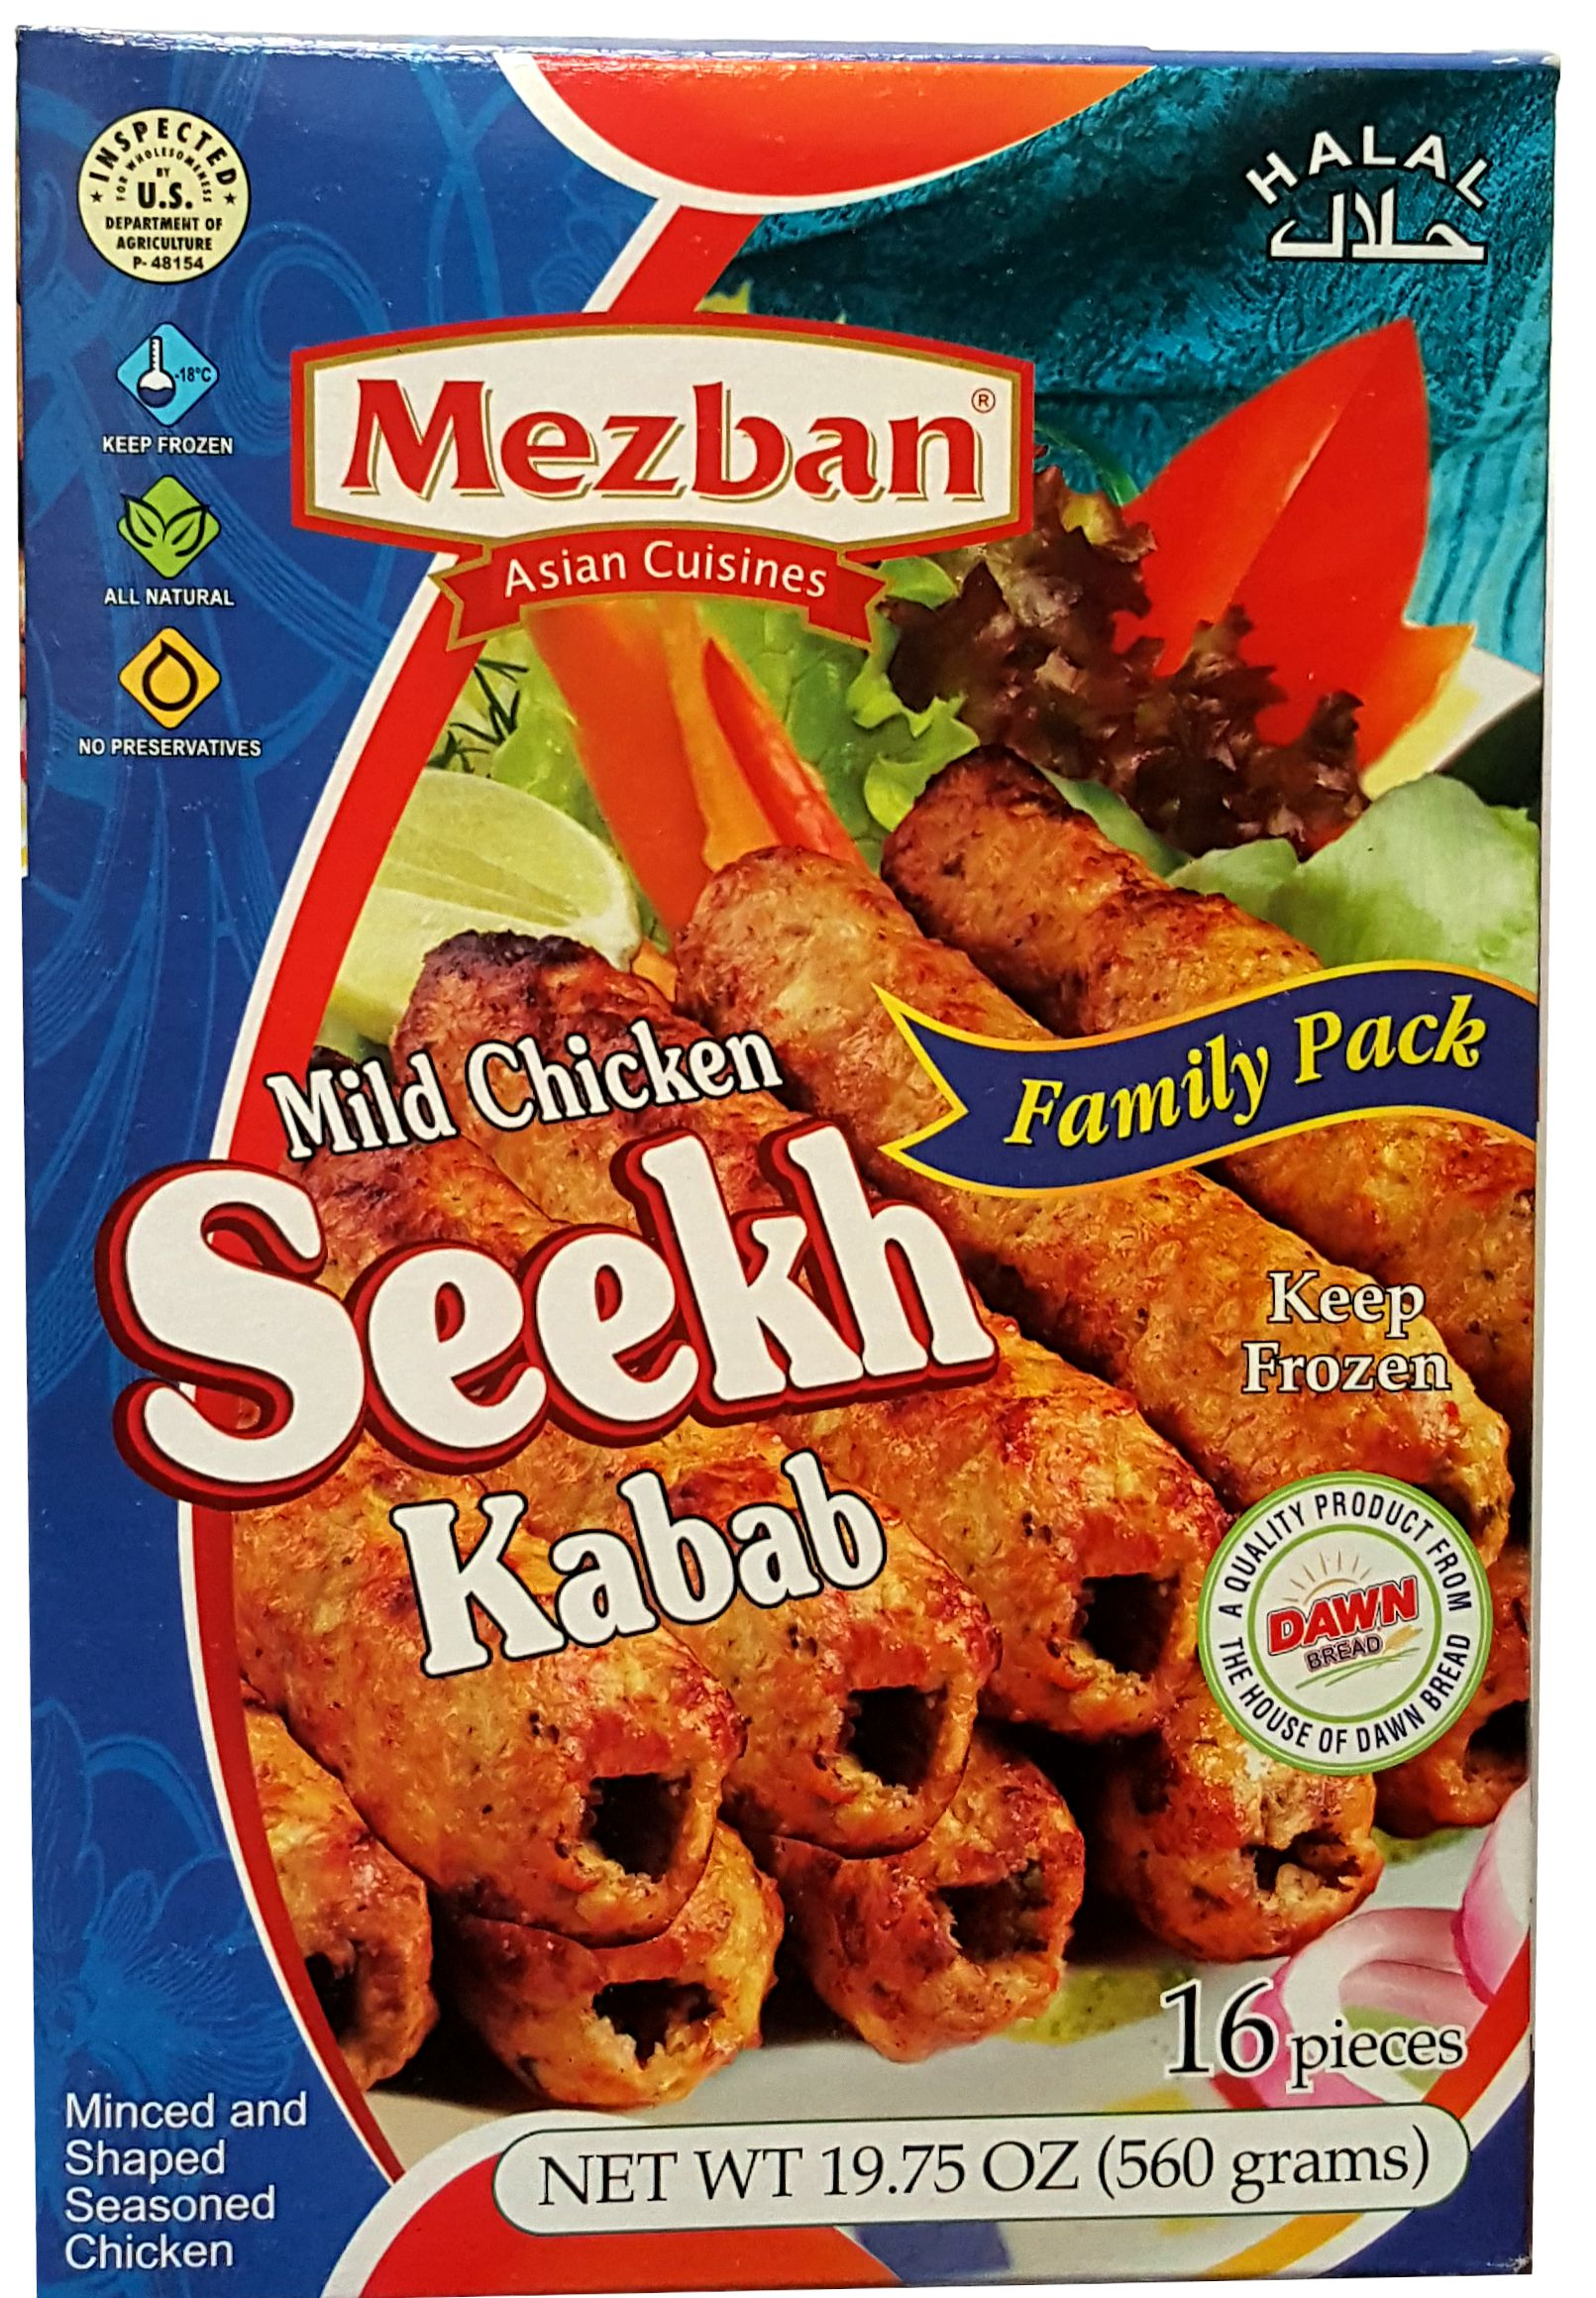 Chicken Seekh Kabab - Mild (Family Pack)